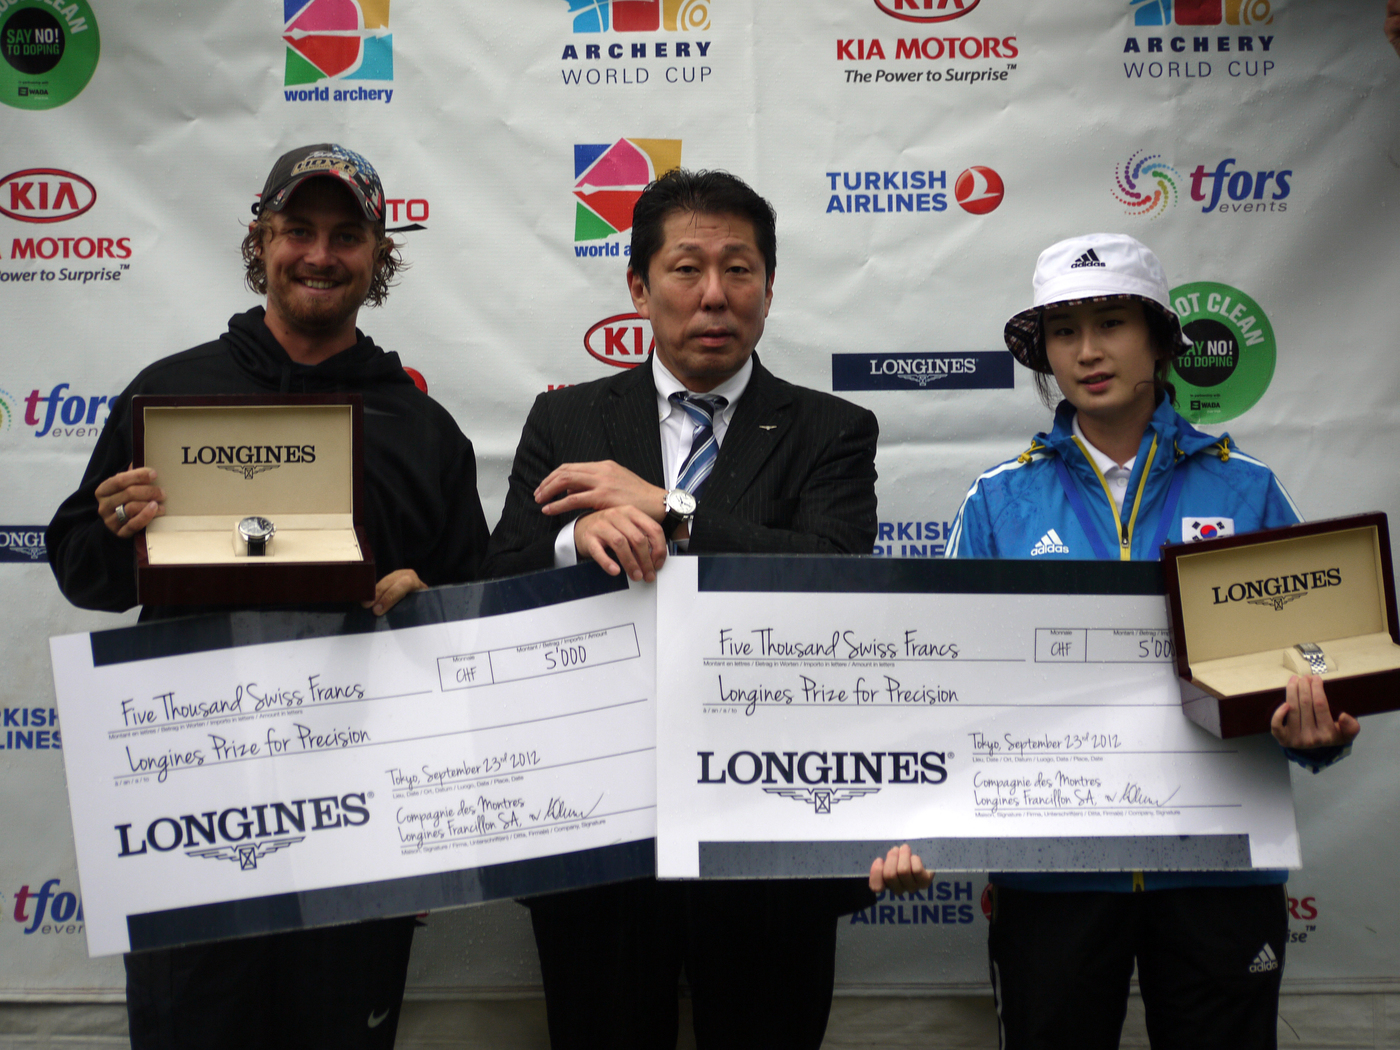 Longines Archery Event: The winners of the 2012 Longines Prize for Precision for archery 1